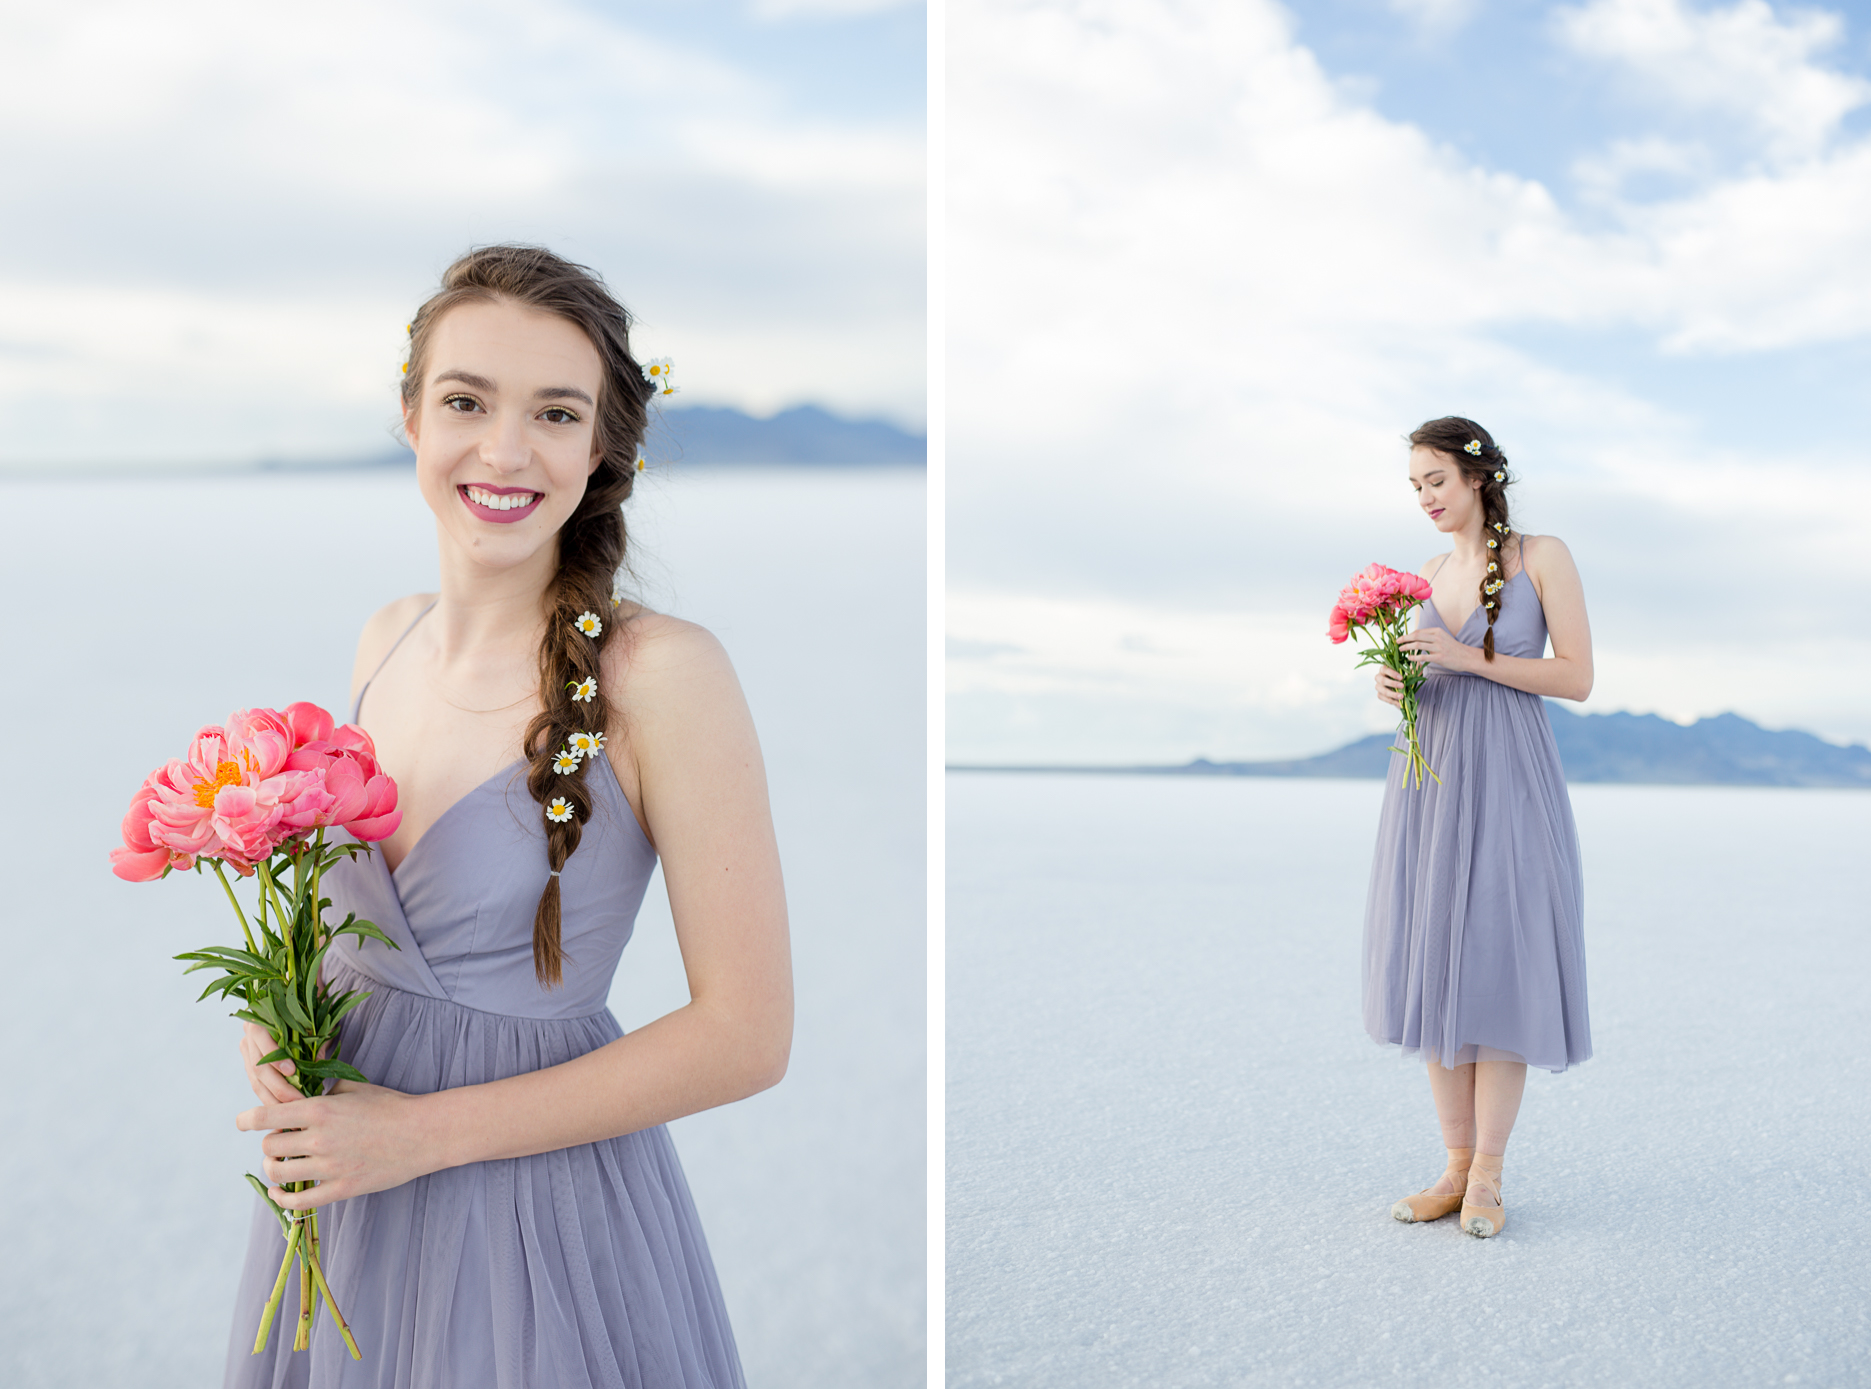 bonneville salt flats portrait photographer